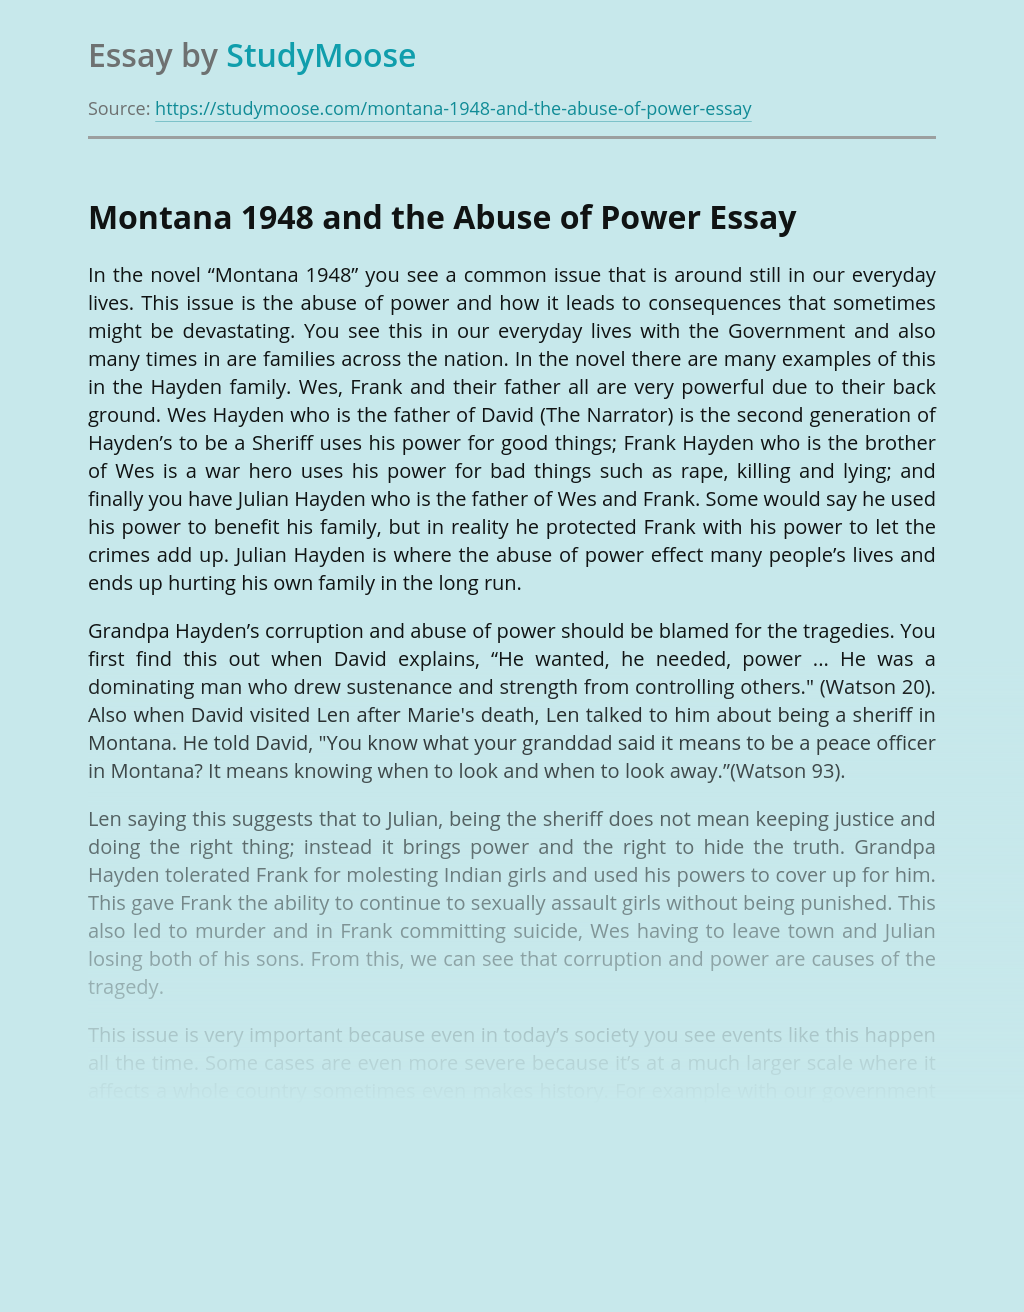 Montana 1948 and the Abuse of Power